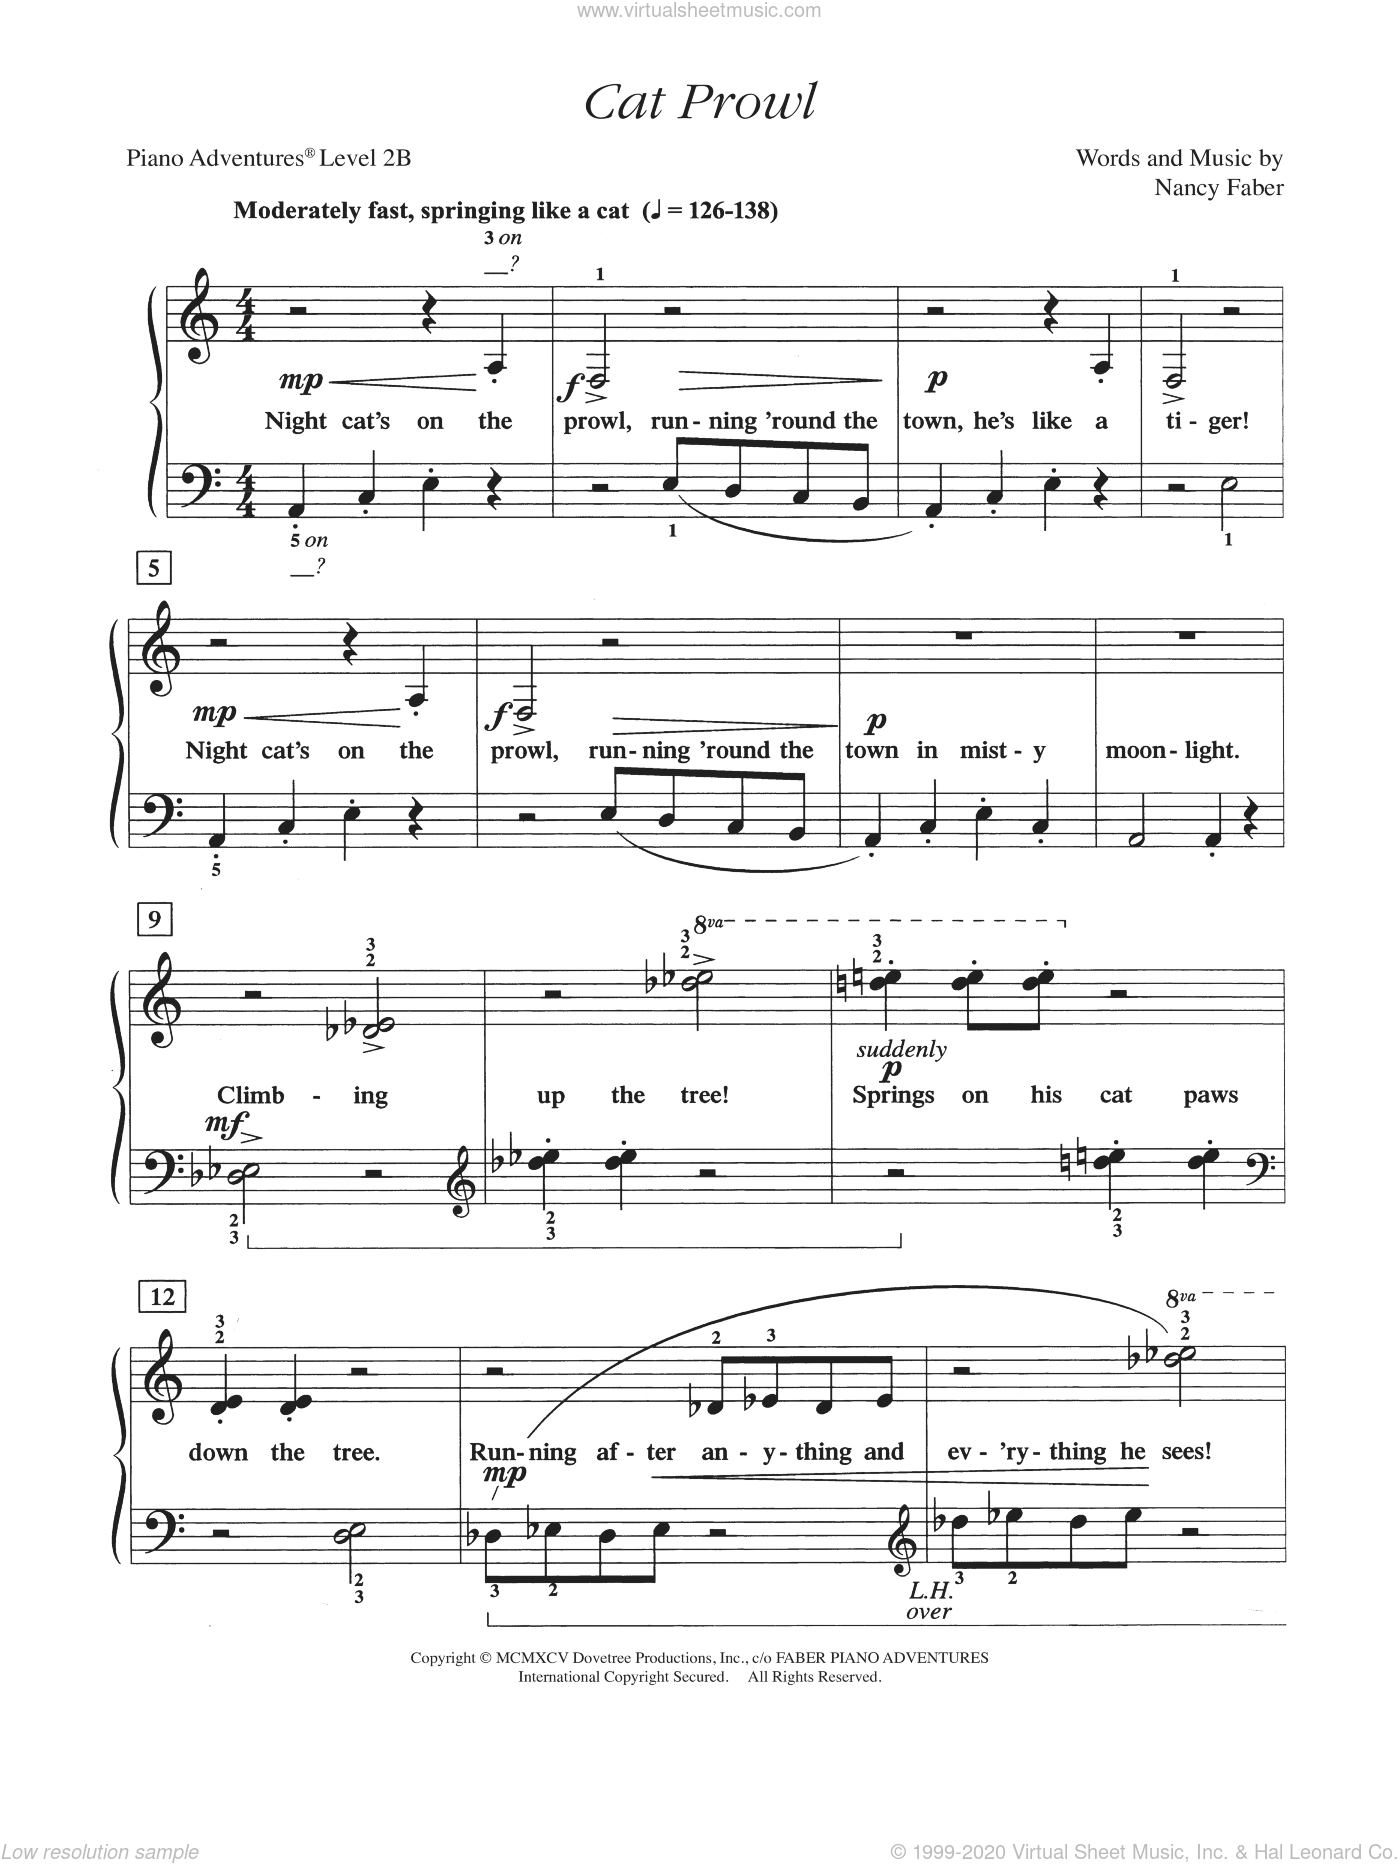 Cat Prowl sheet music for piano solo by Nancy Faber, intermediate/advanced skill level